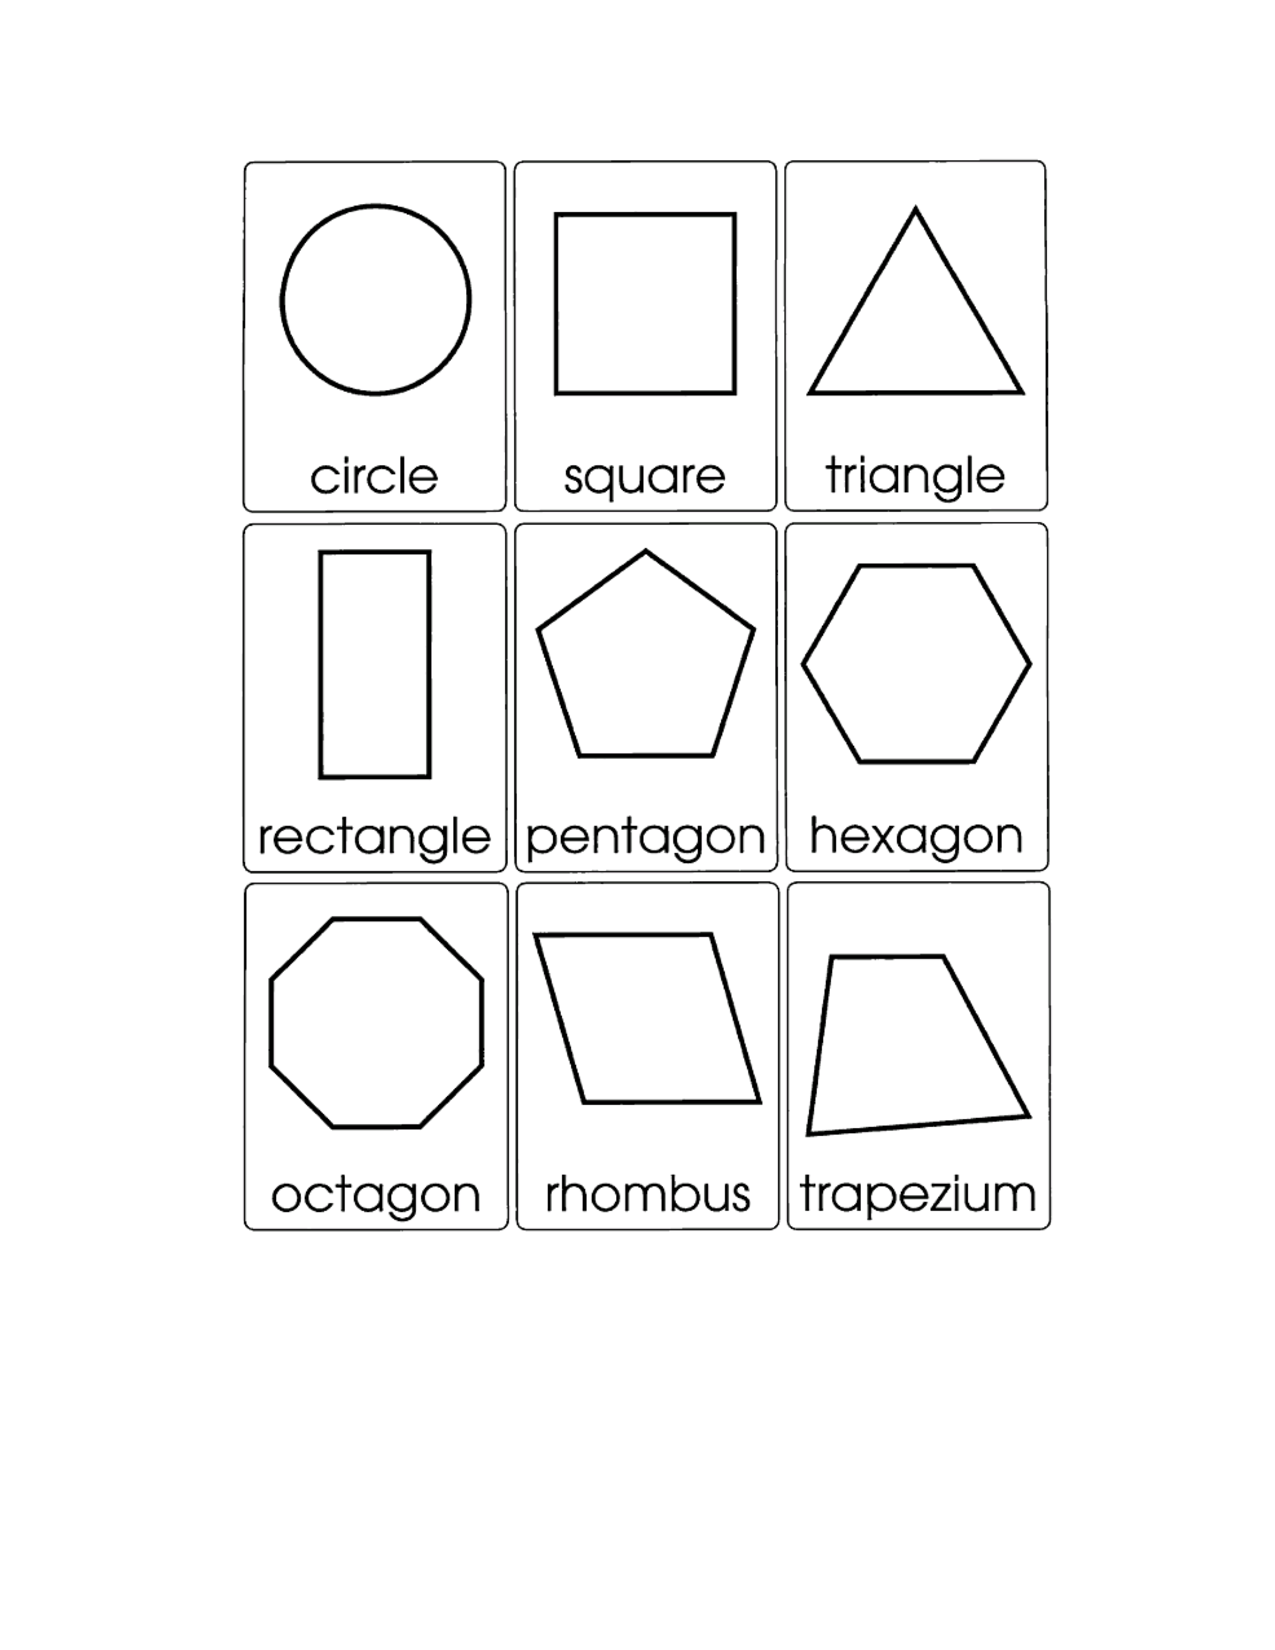 medium resolution of Identifying 2d And 3d Shapes Worksheet   Printable Worksheets and  Activities for Teachers